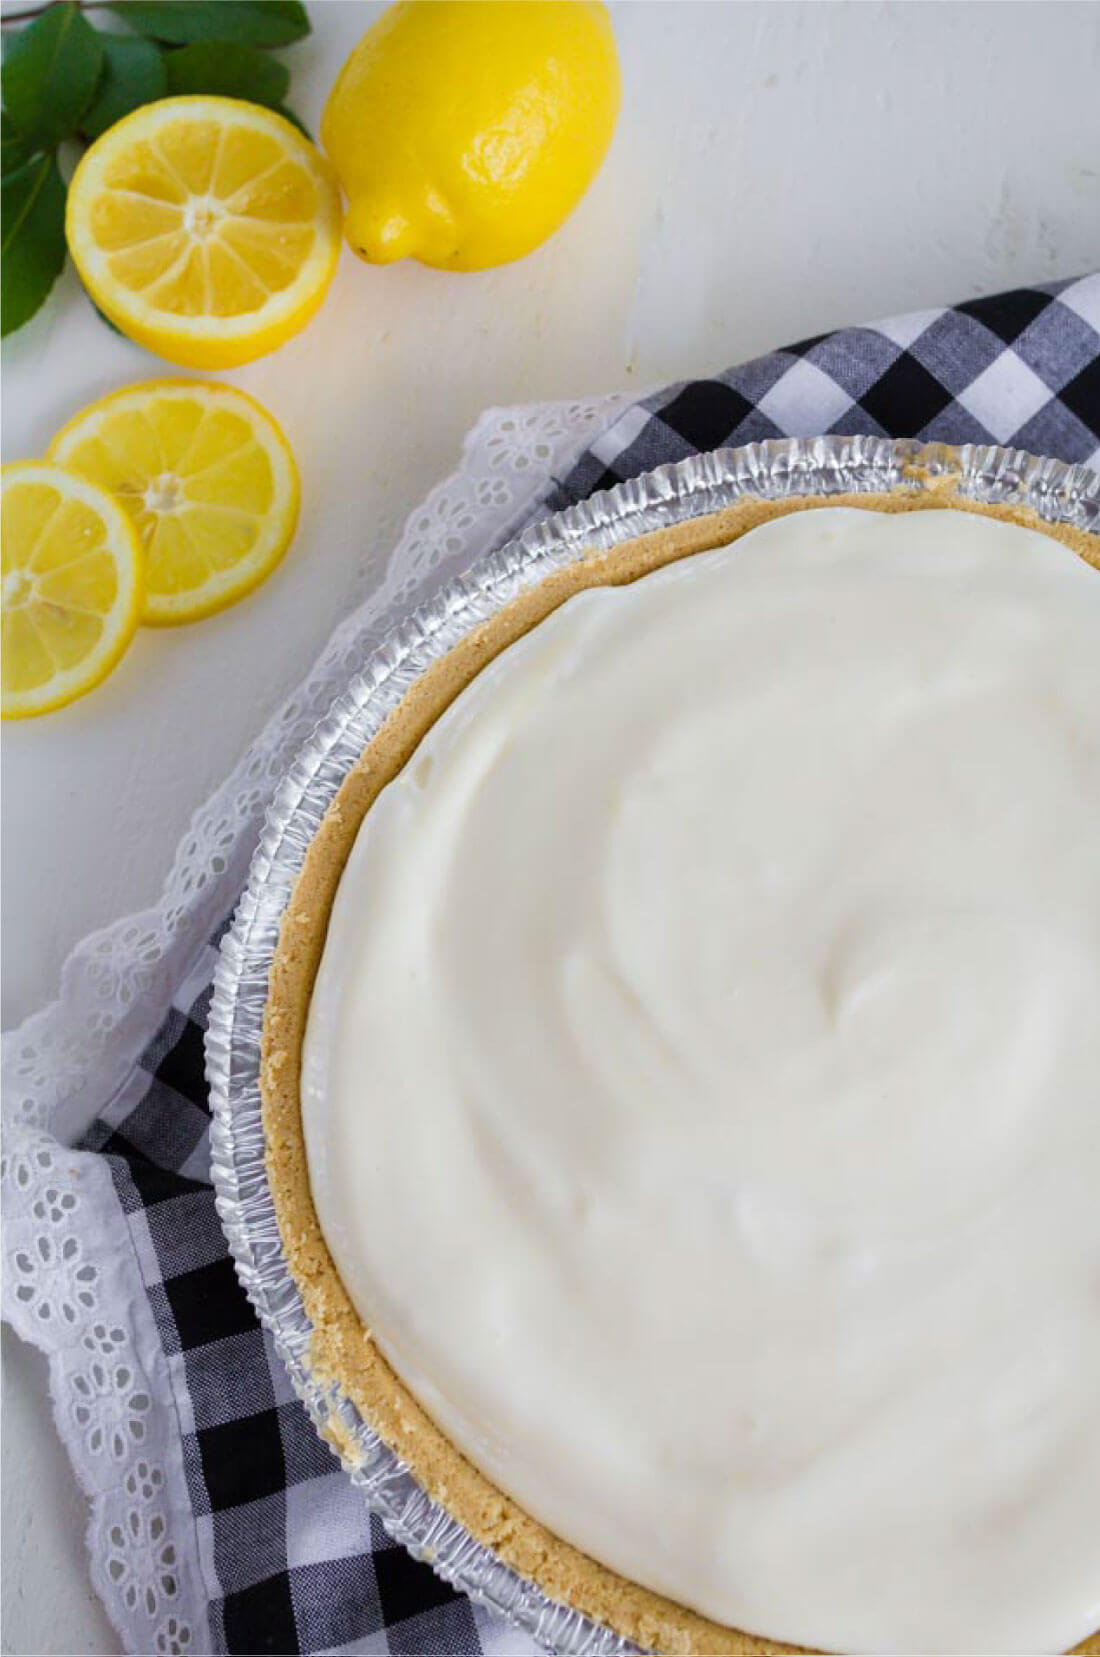 Lemon Pie Recipe - an easy and delicious dessert recipe that's perfect for summer.